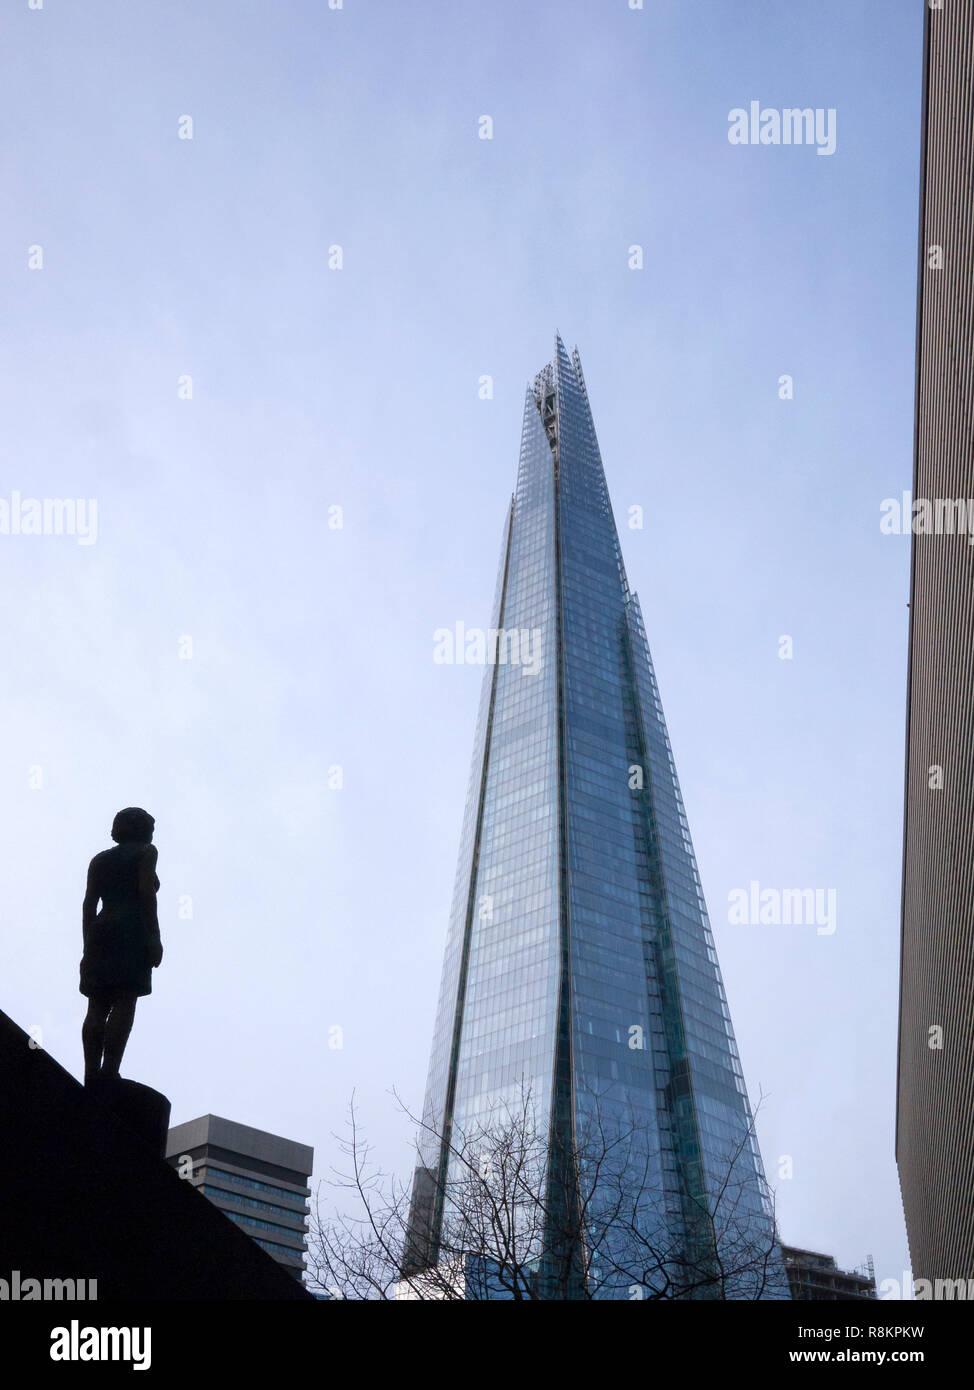 Views of the London Shard building in Bermondsey South East London - Stock Image